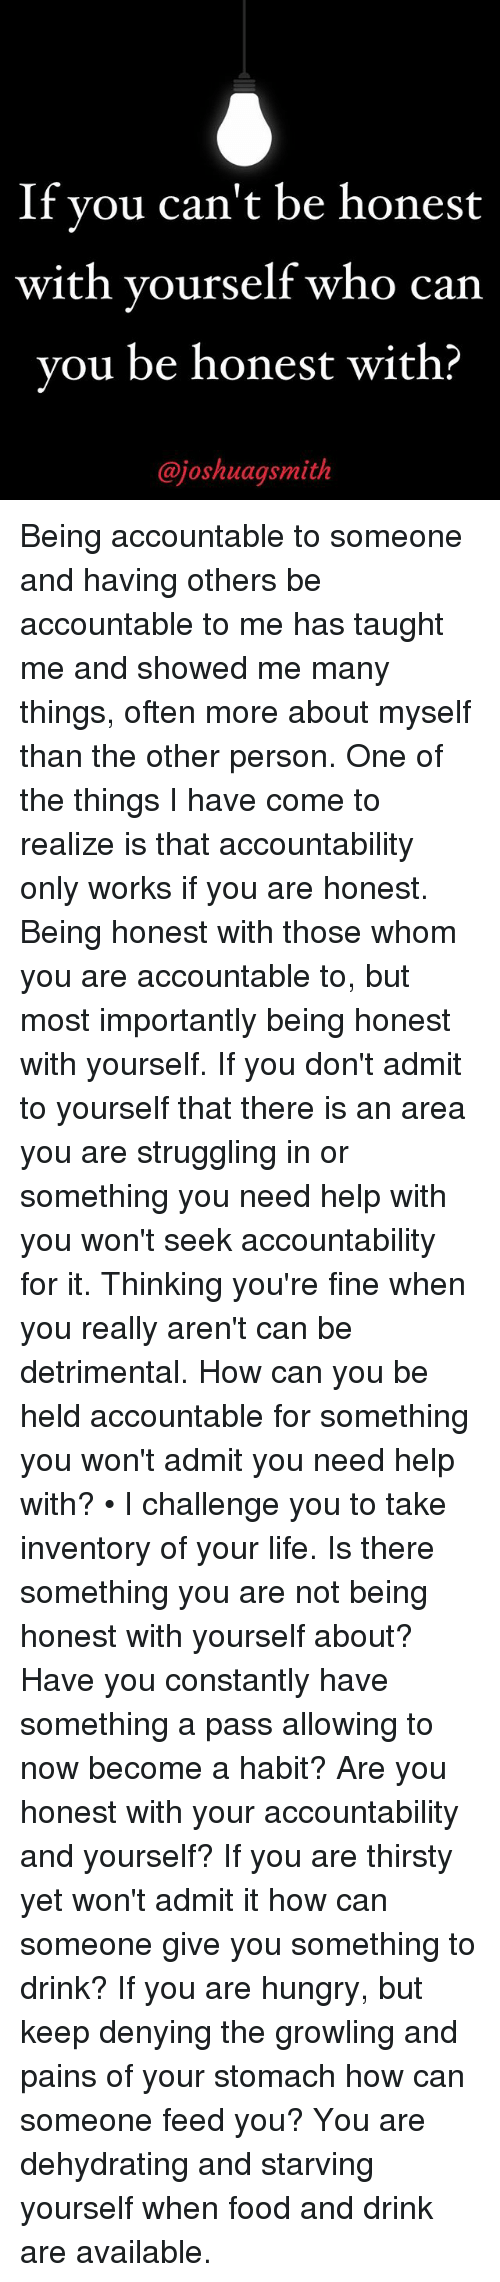 being accountable to others